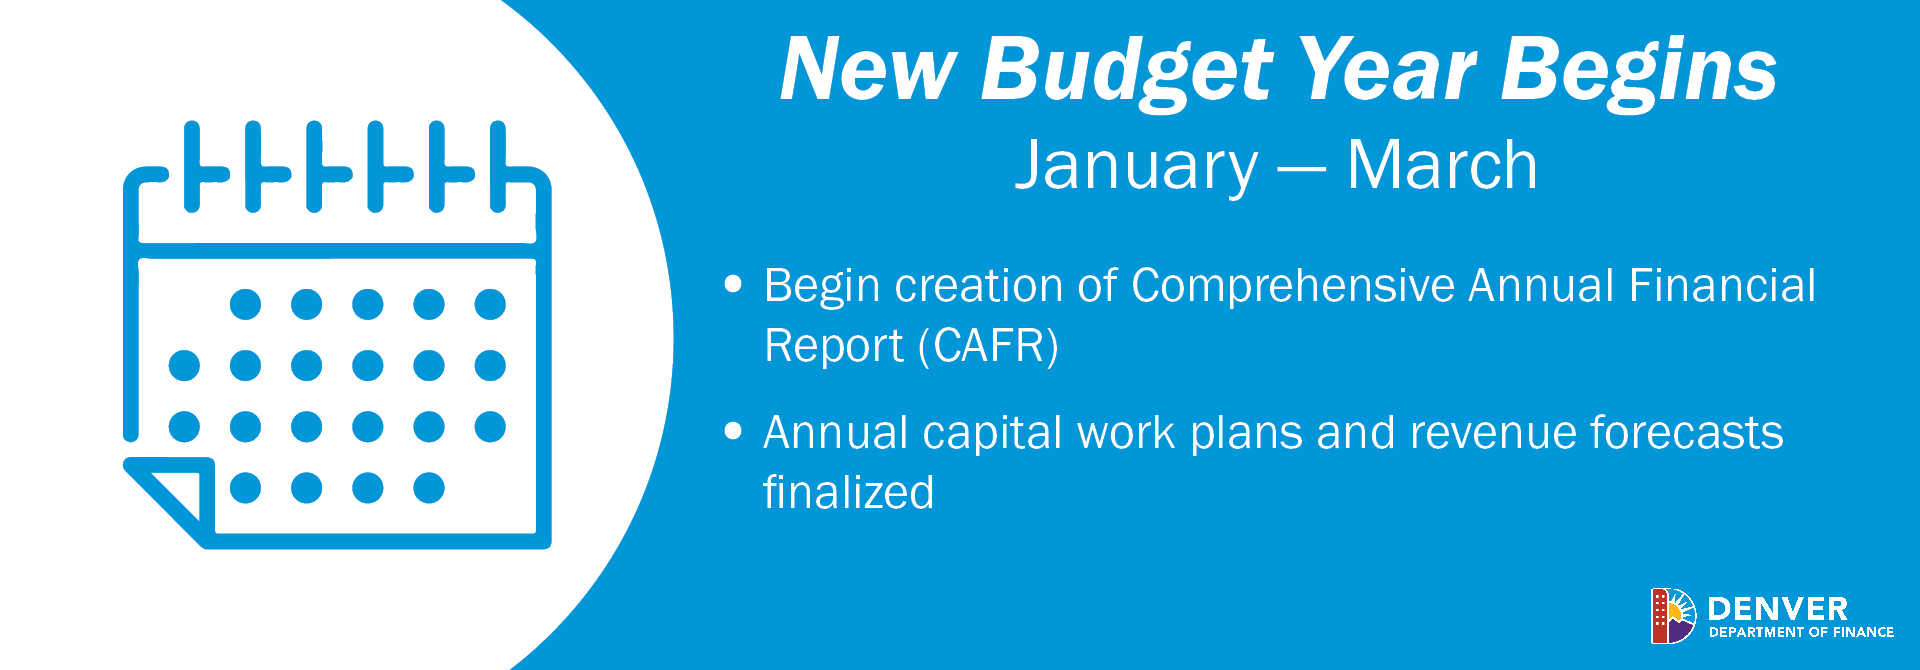 Denver Budget Cycle: January - March = New Budget Year Begins